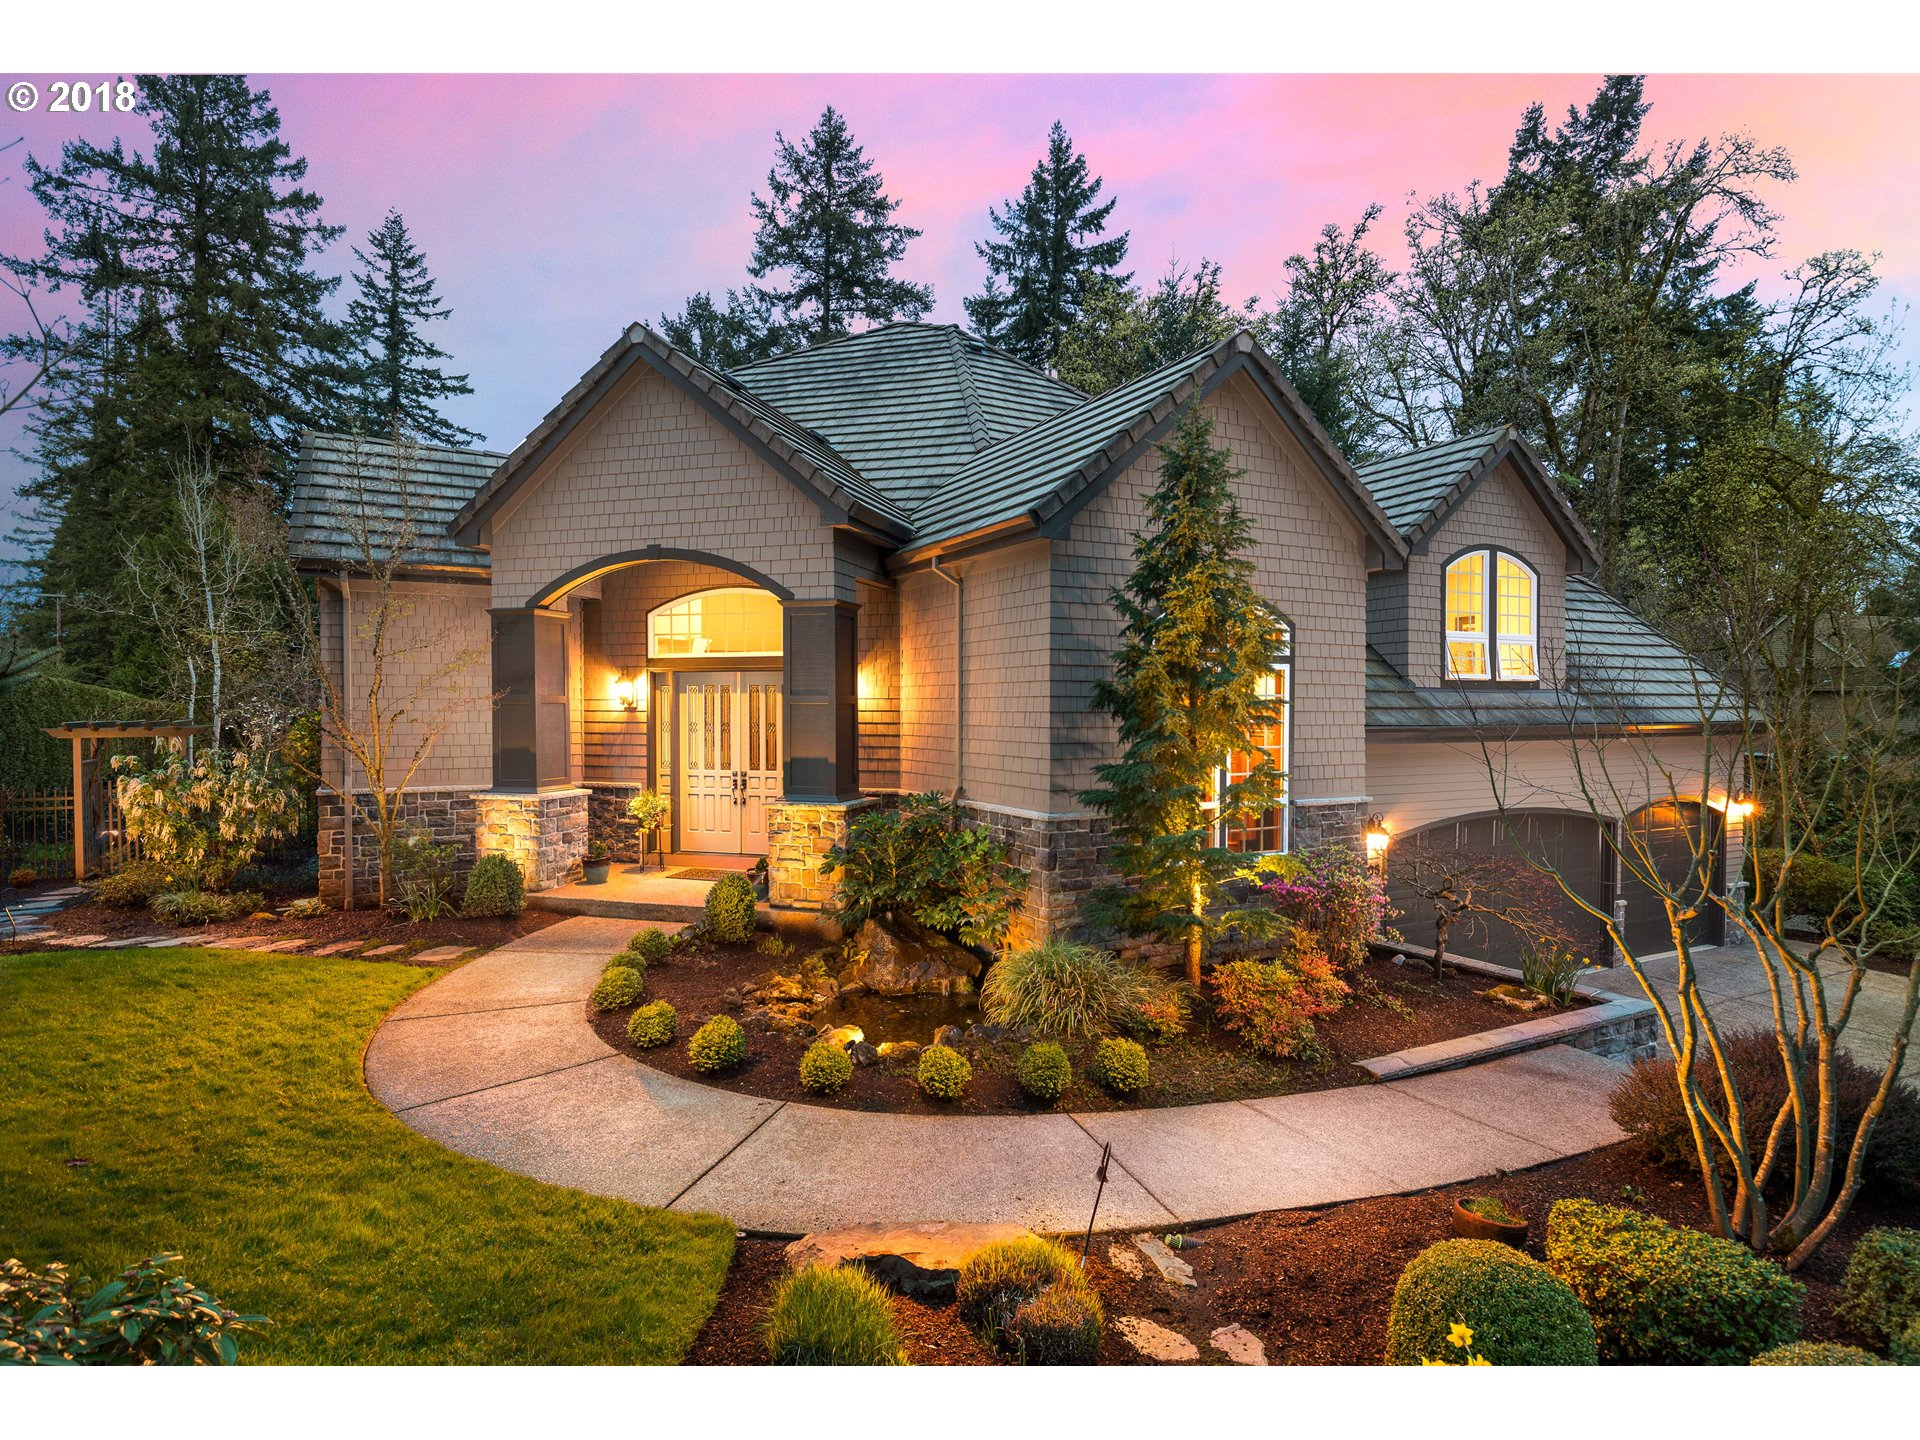 14005 GOODALL RD, Lake Oswego, OR 97034